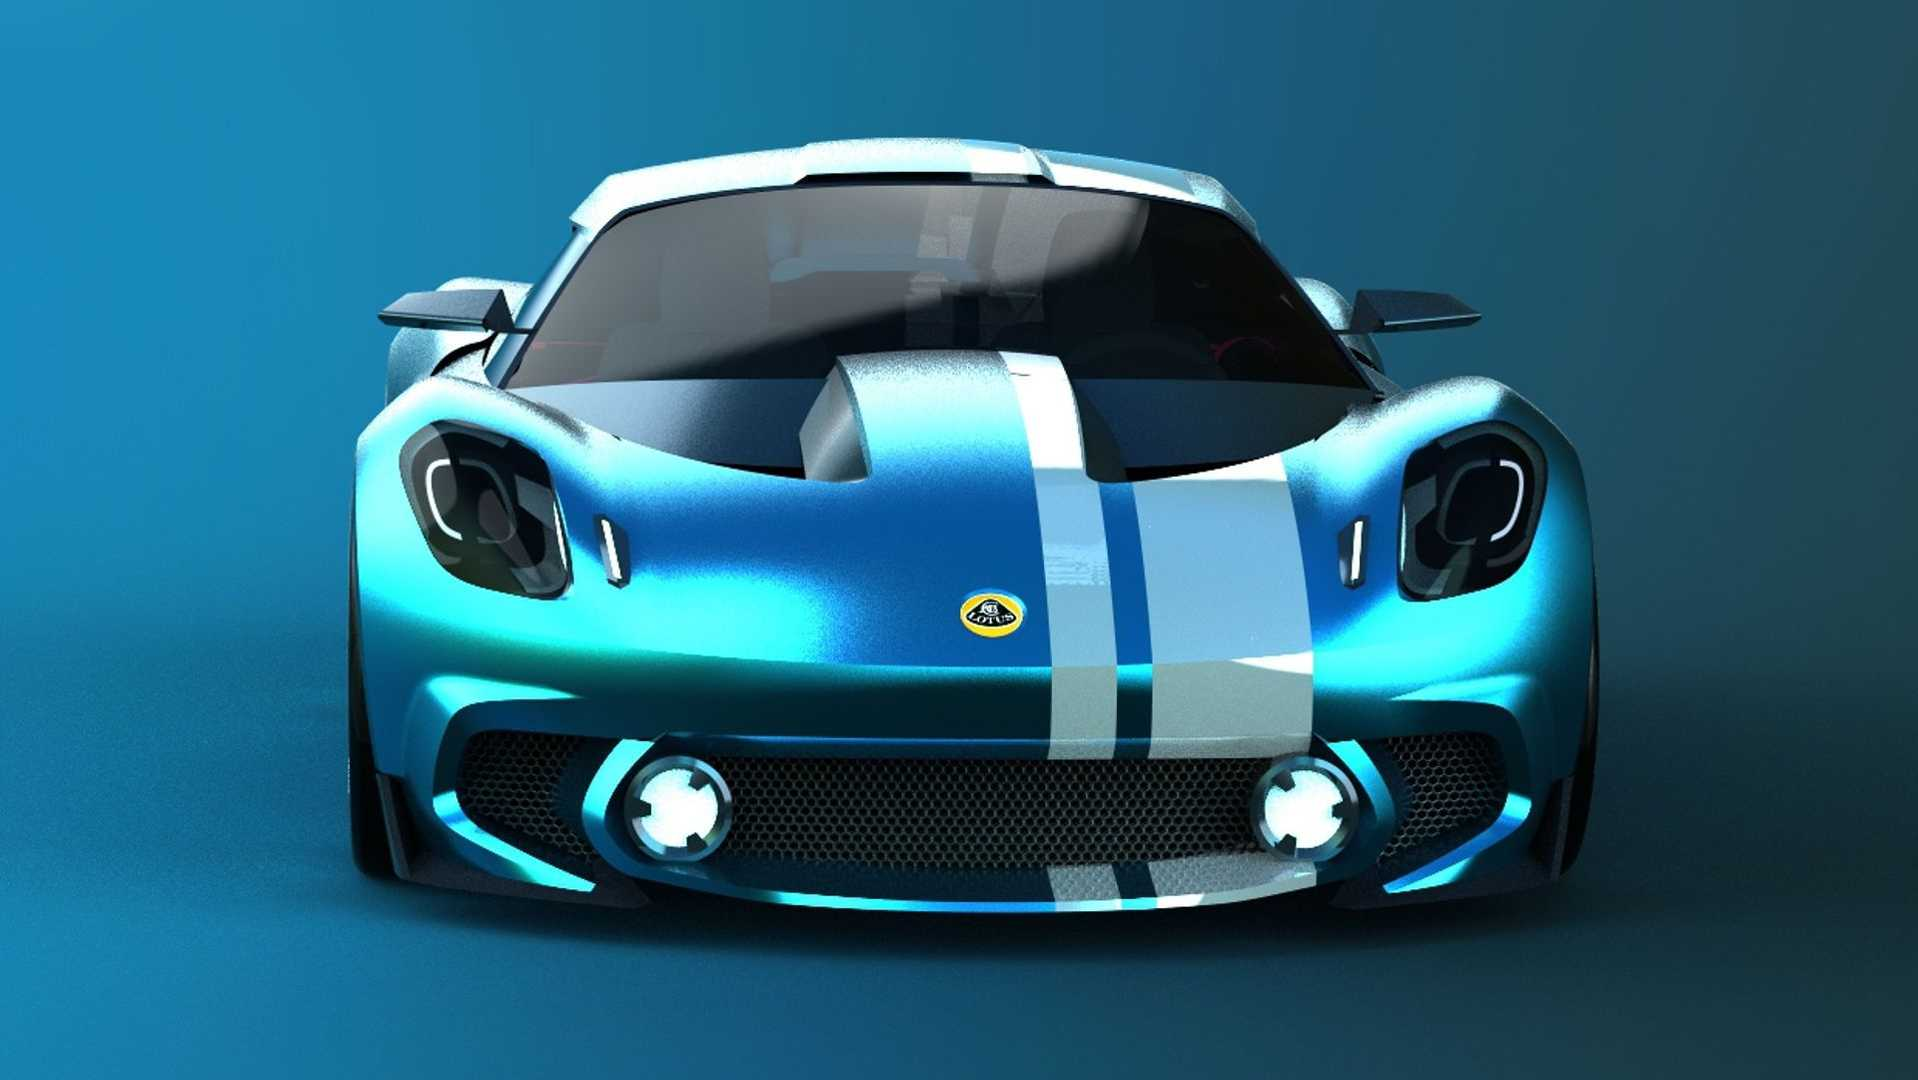 90 All New 2020 Lotus Exige Price And Release Date